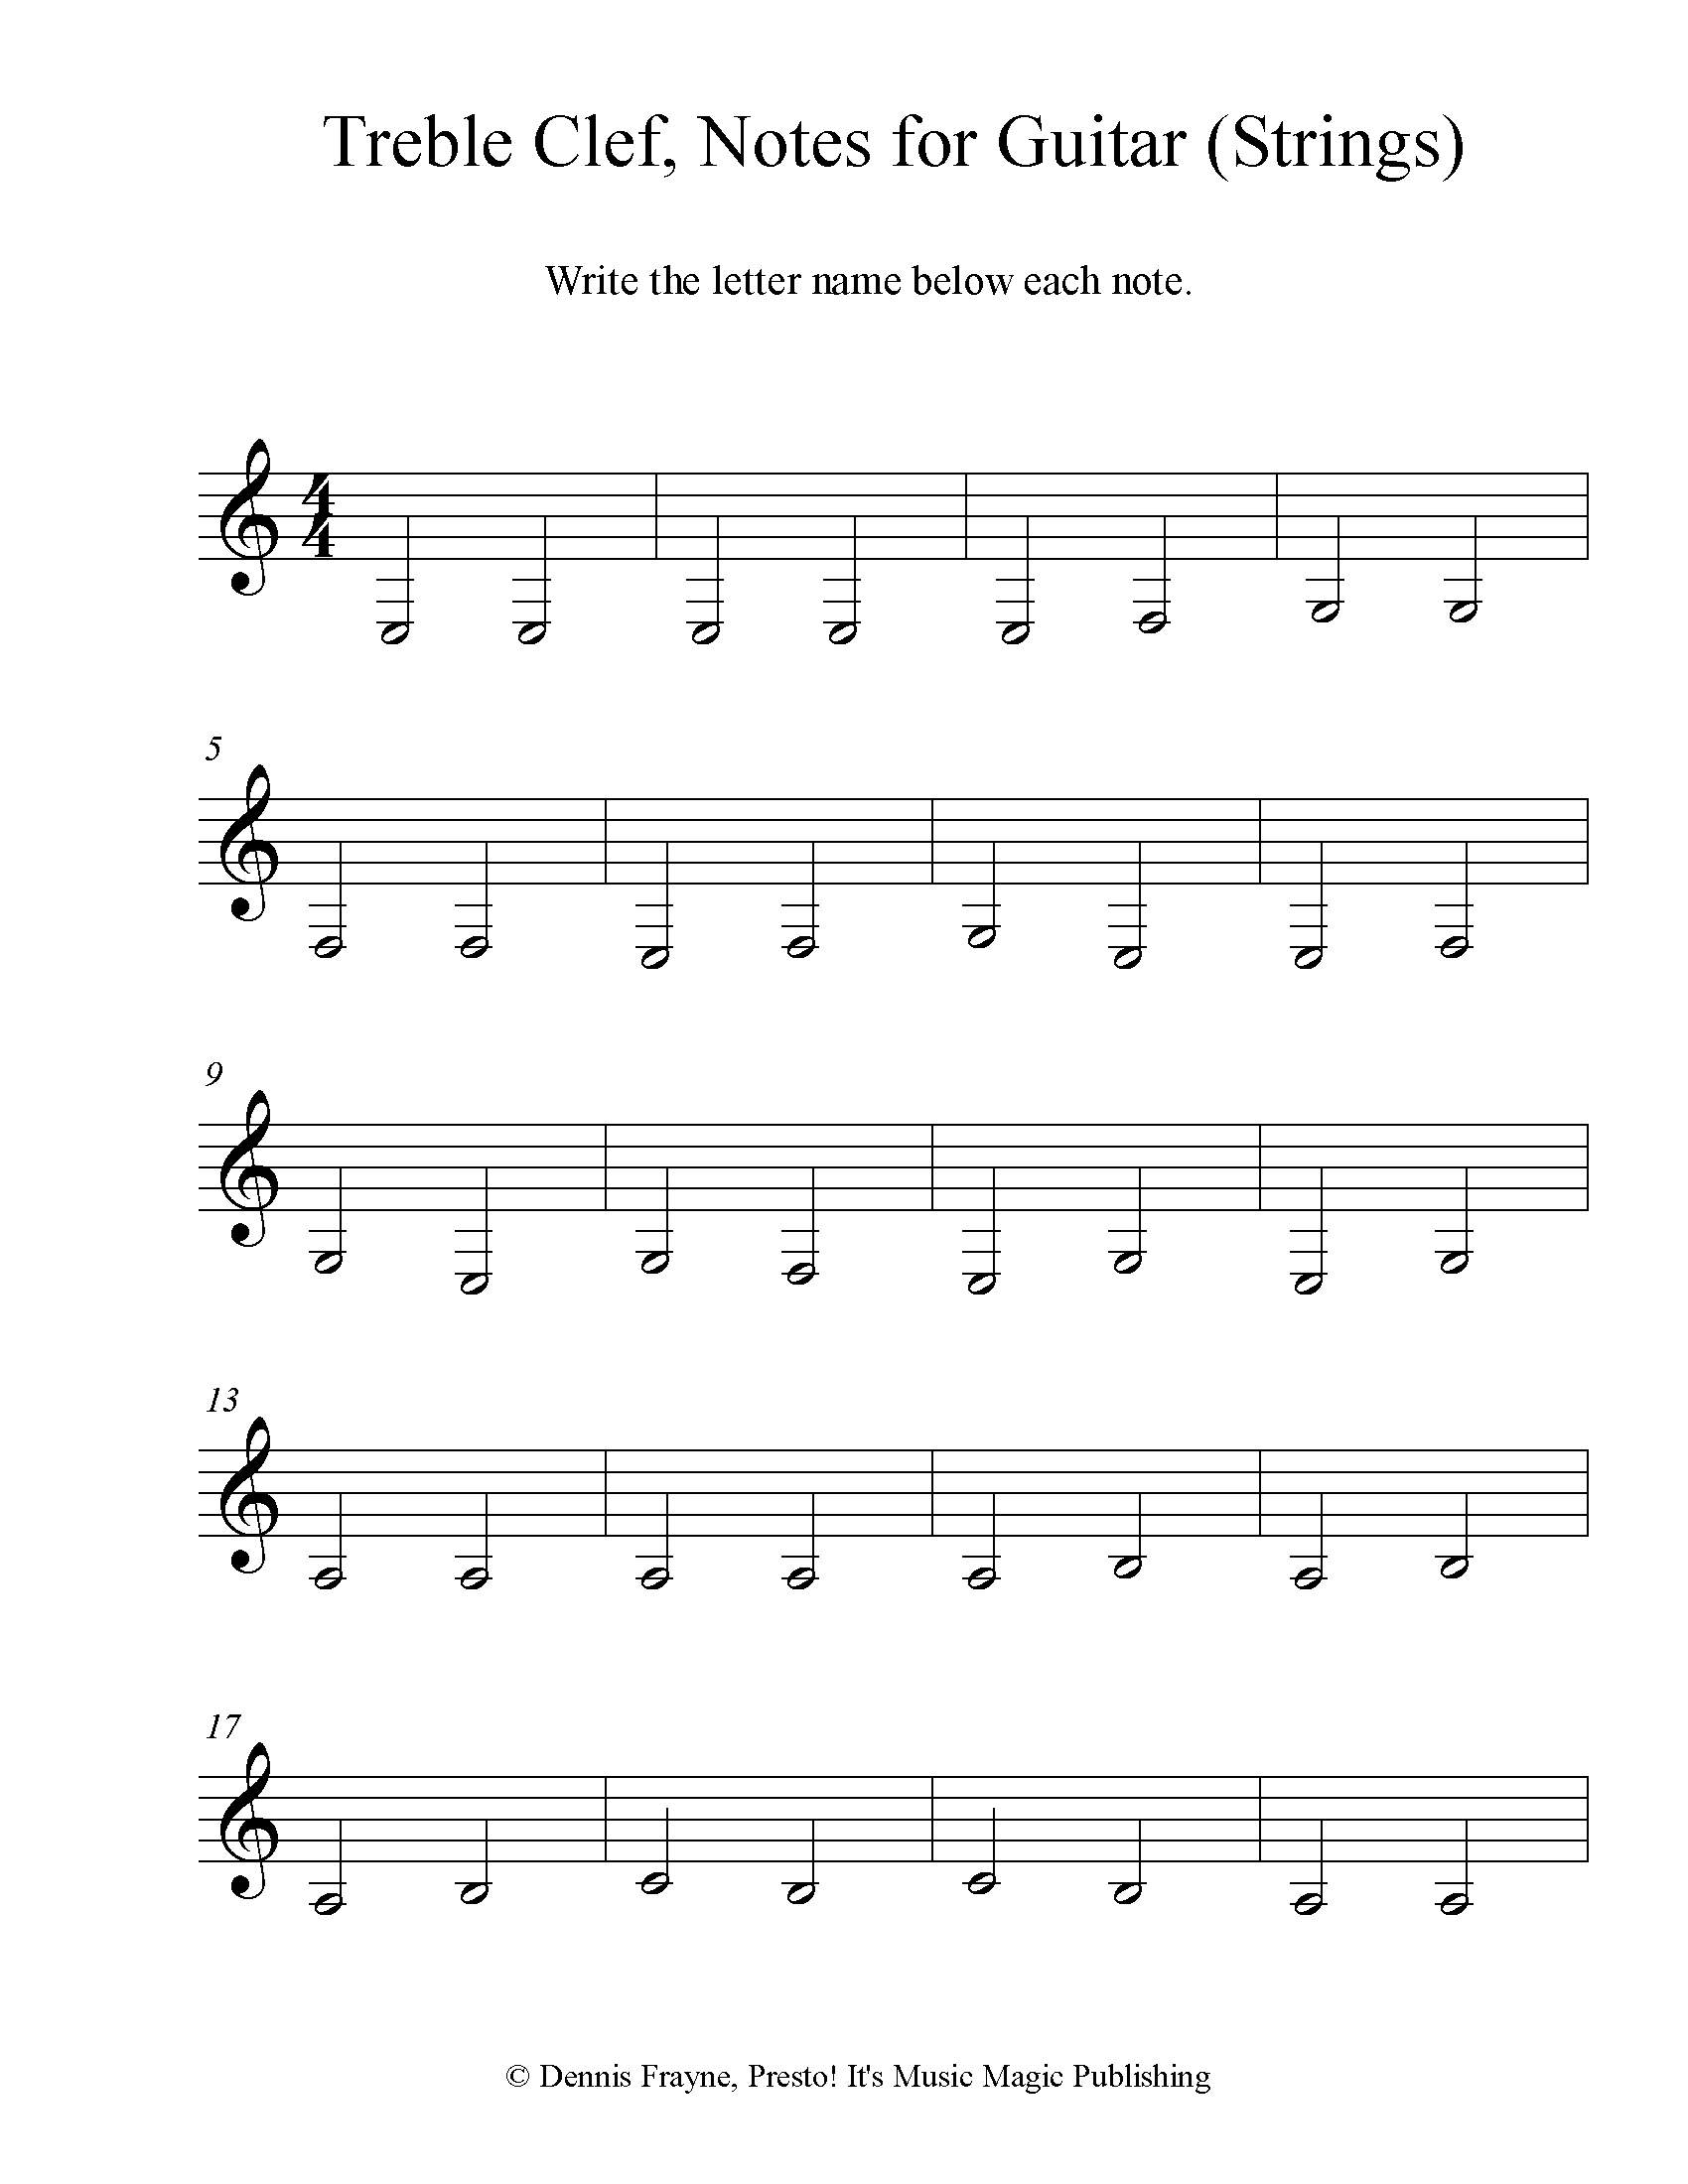 Treble Clef Note Identification for Guitar (emphasis on strings) 6 pages